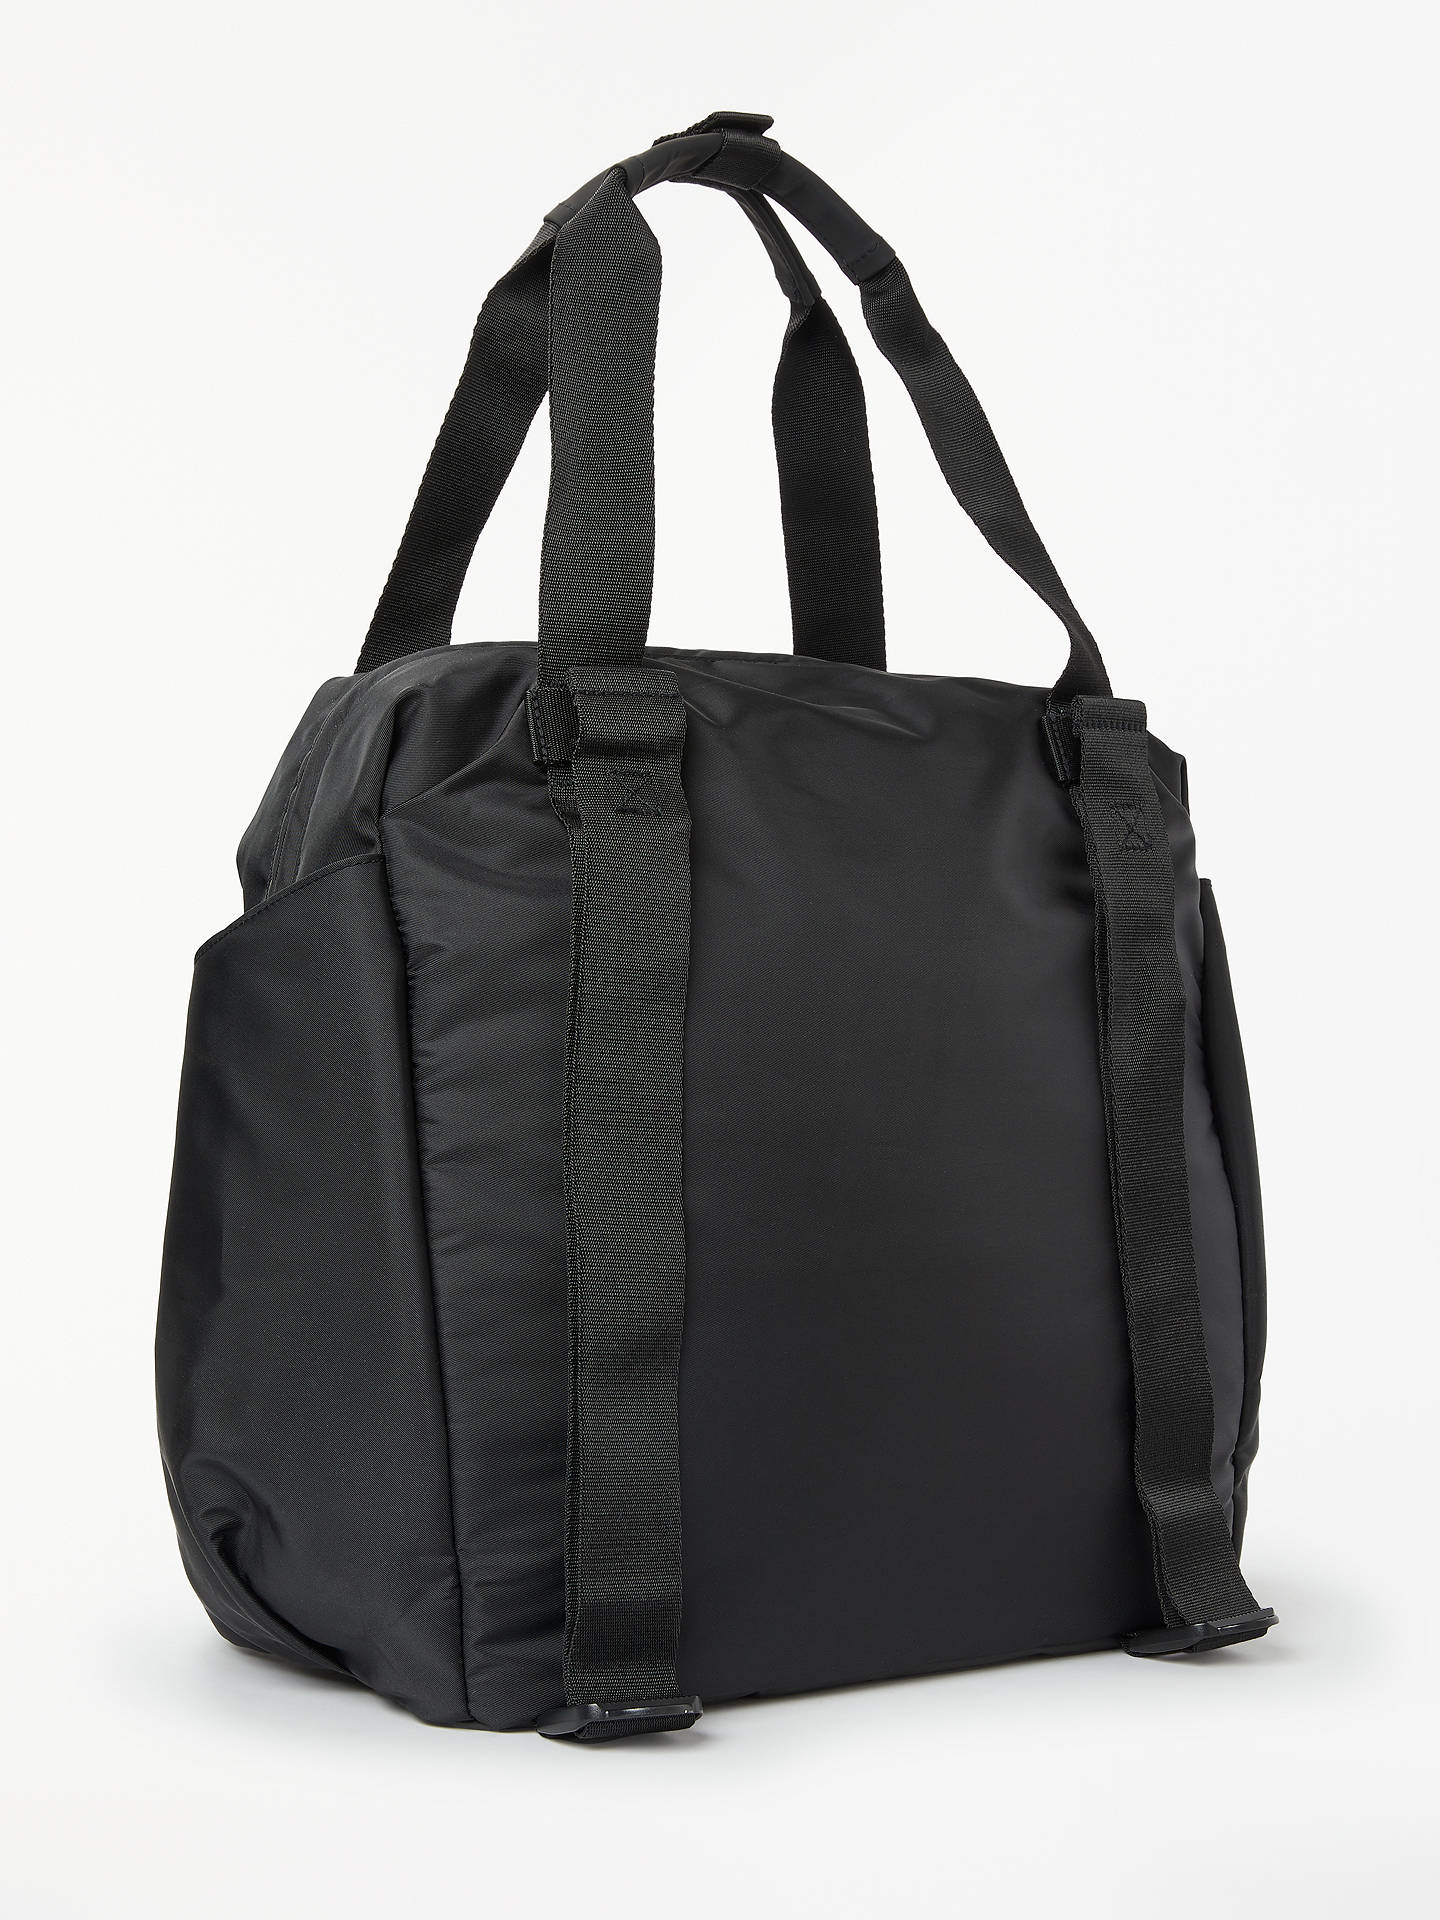 f80b7de71 ... Buy adidas Training ID Tote Bag, Black Online at johnlewis.com ...